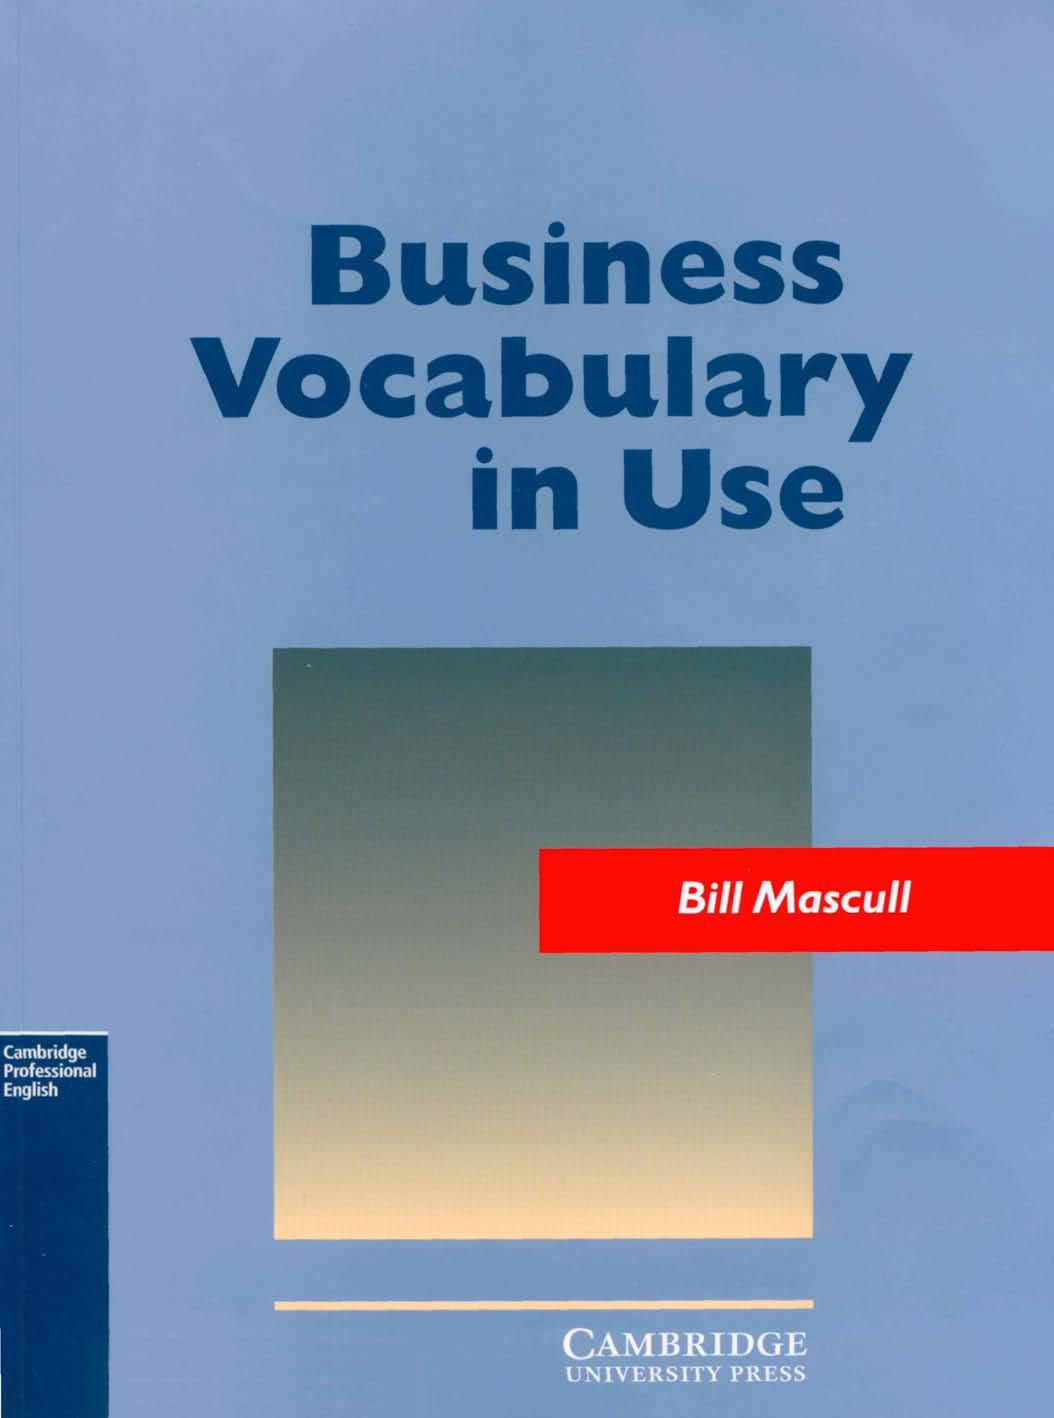 business vocabulary in use pdf download